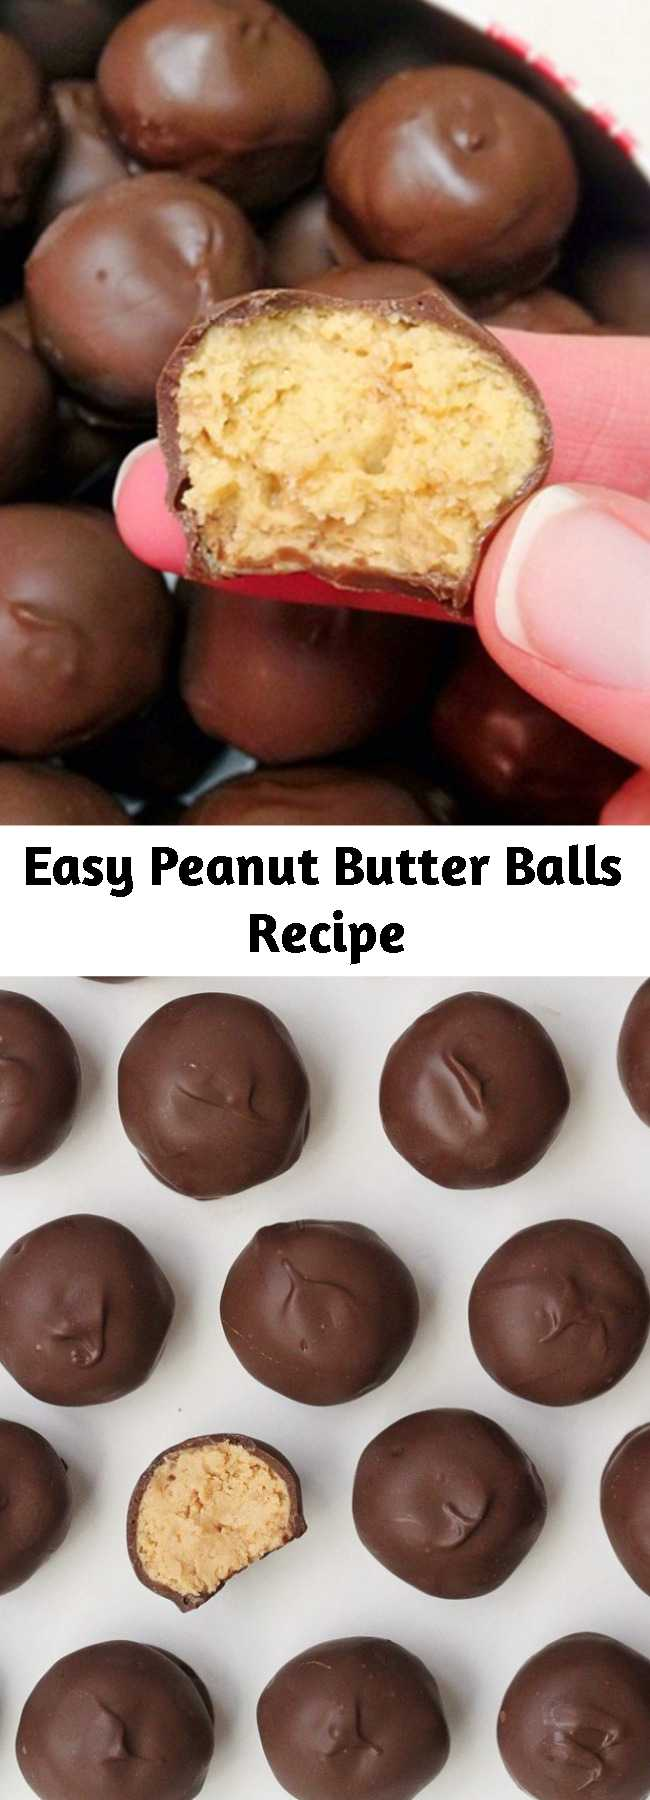 Easy Peanut Butter Balls Recipe - These peanut butter balls are a huge hit! They're no bake, easy to make, and require only 5 ingredients!